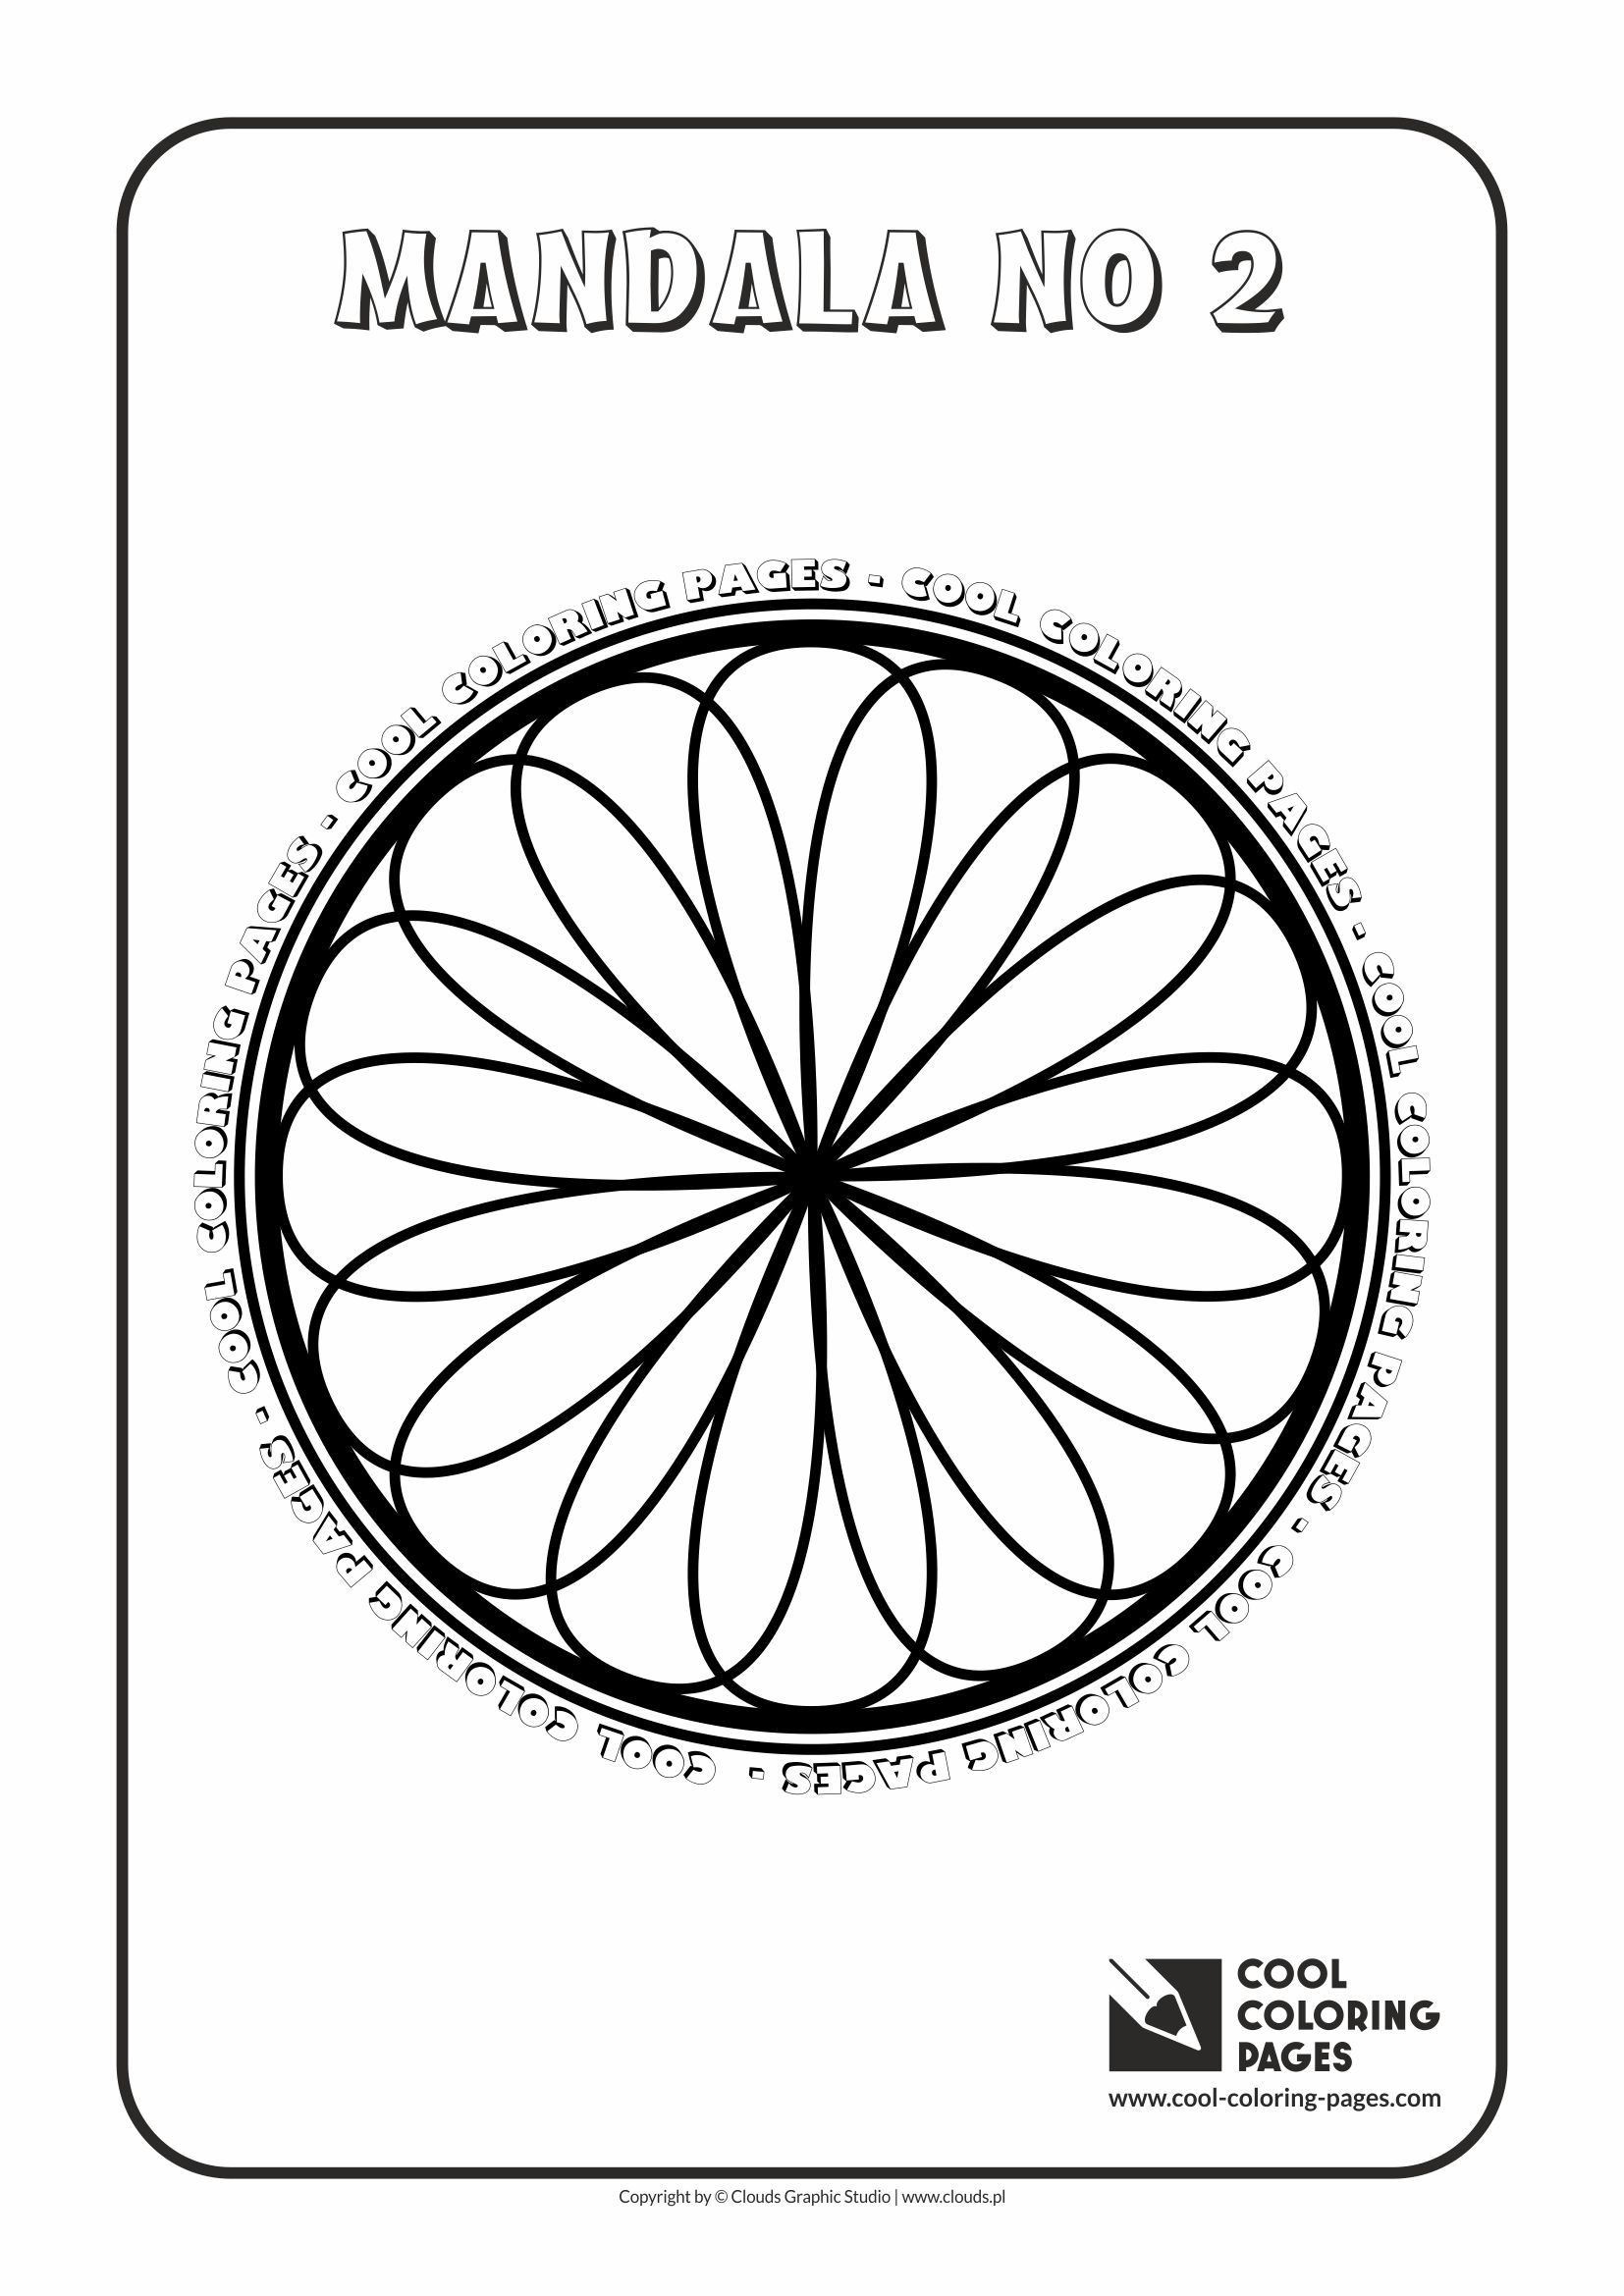 cool coloring pages mandalas cool coloring pages free. Black Bedroom Furniture Sets. Home Design Ideas